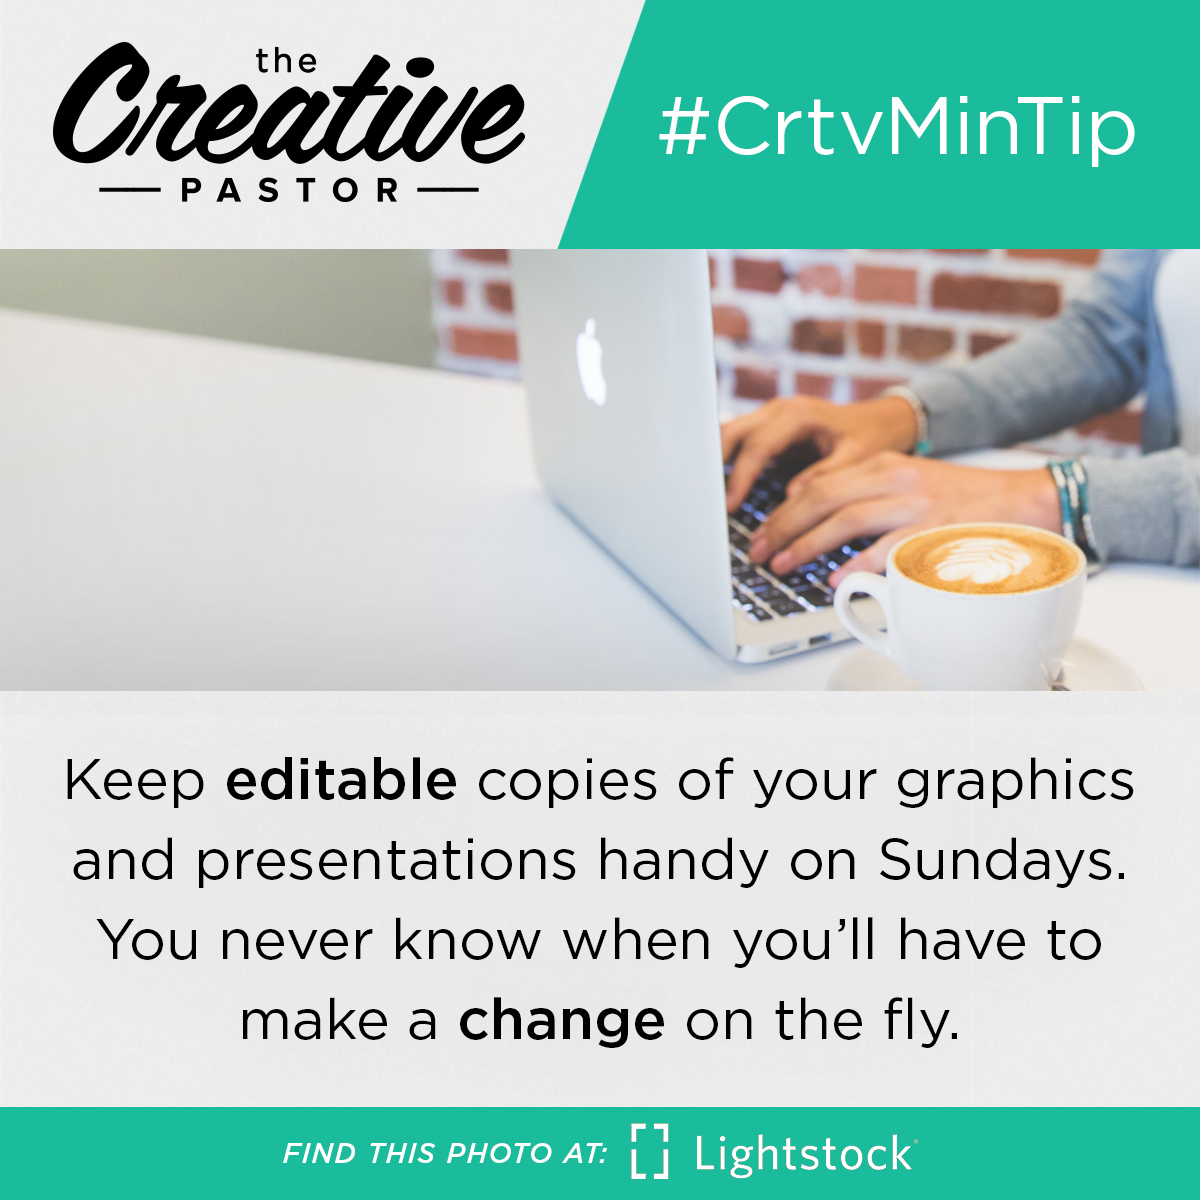 Keep editable copies of your graphics and presentations handy on Sundays. You never know when you'll have to make a change on the fly.